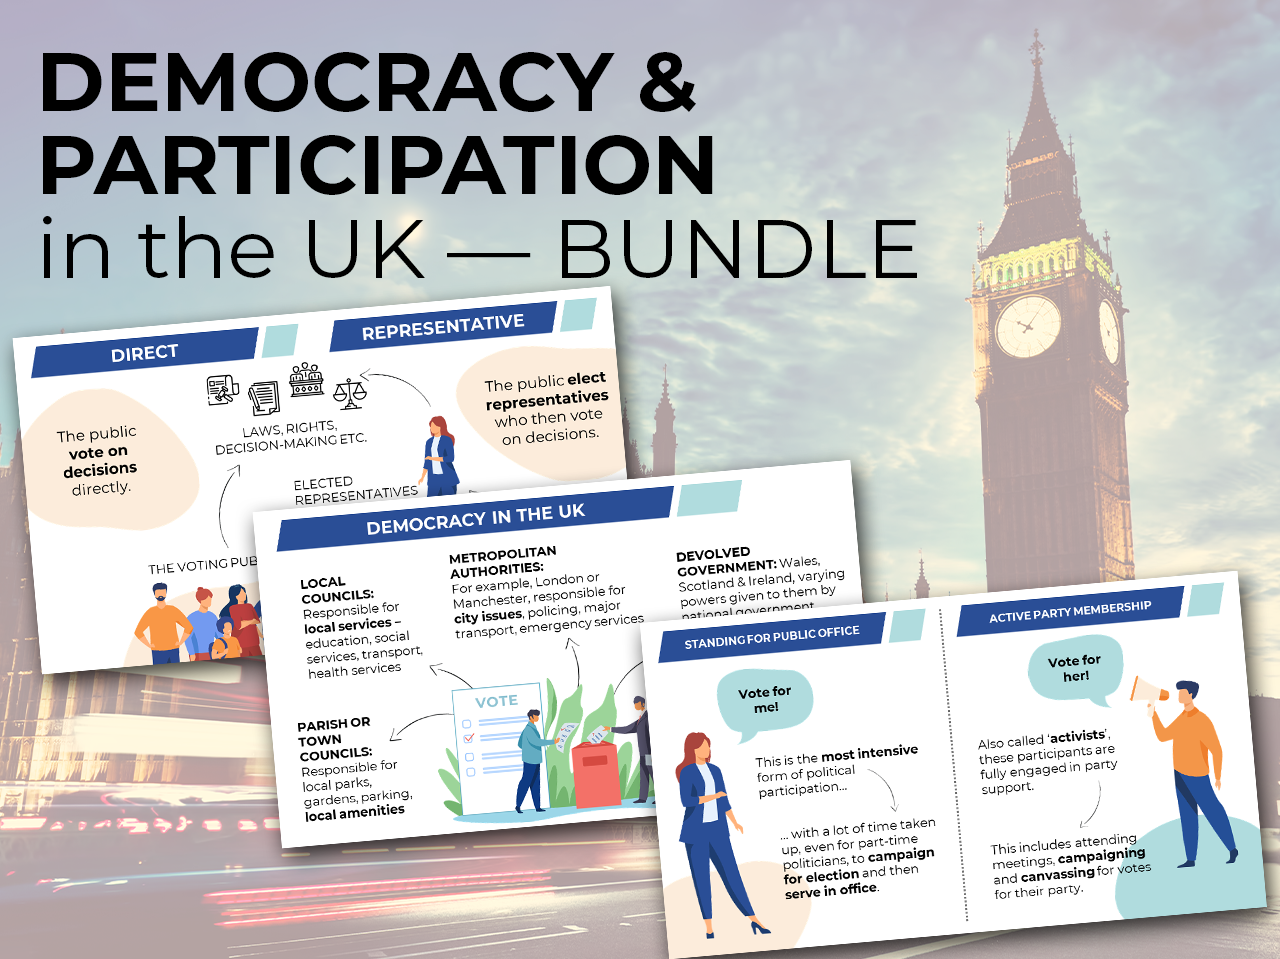 Democracy & Participation in the UK - Edexcel A Level Politics